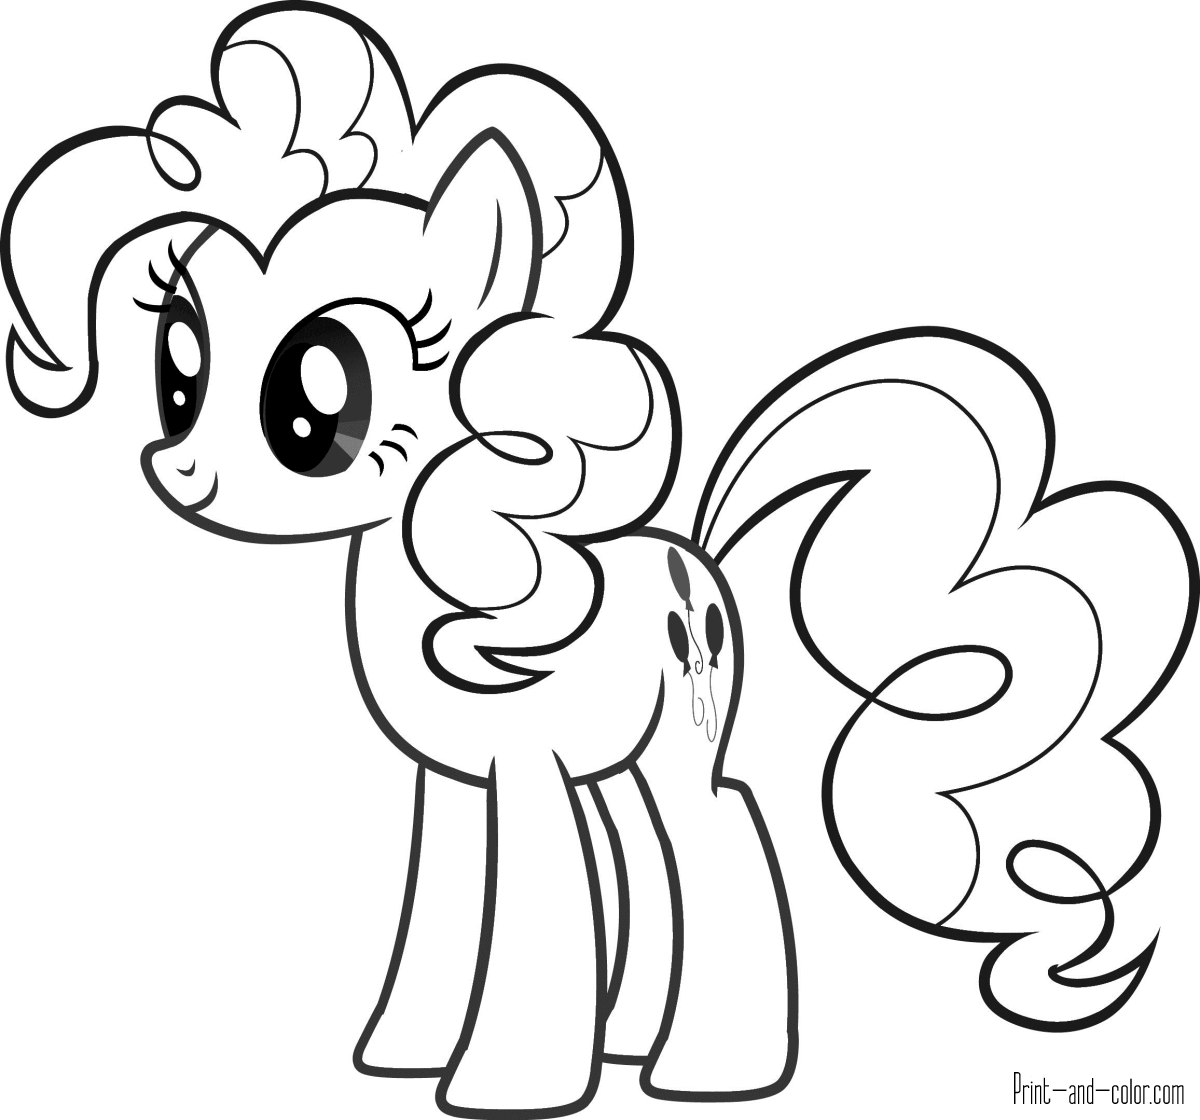 mlp coloring page my little pony coloring page coloring home coloring page mlp